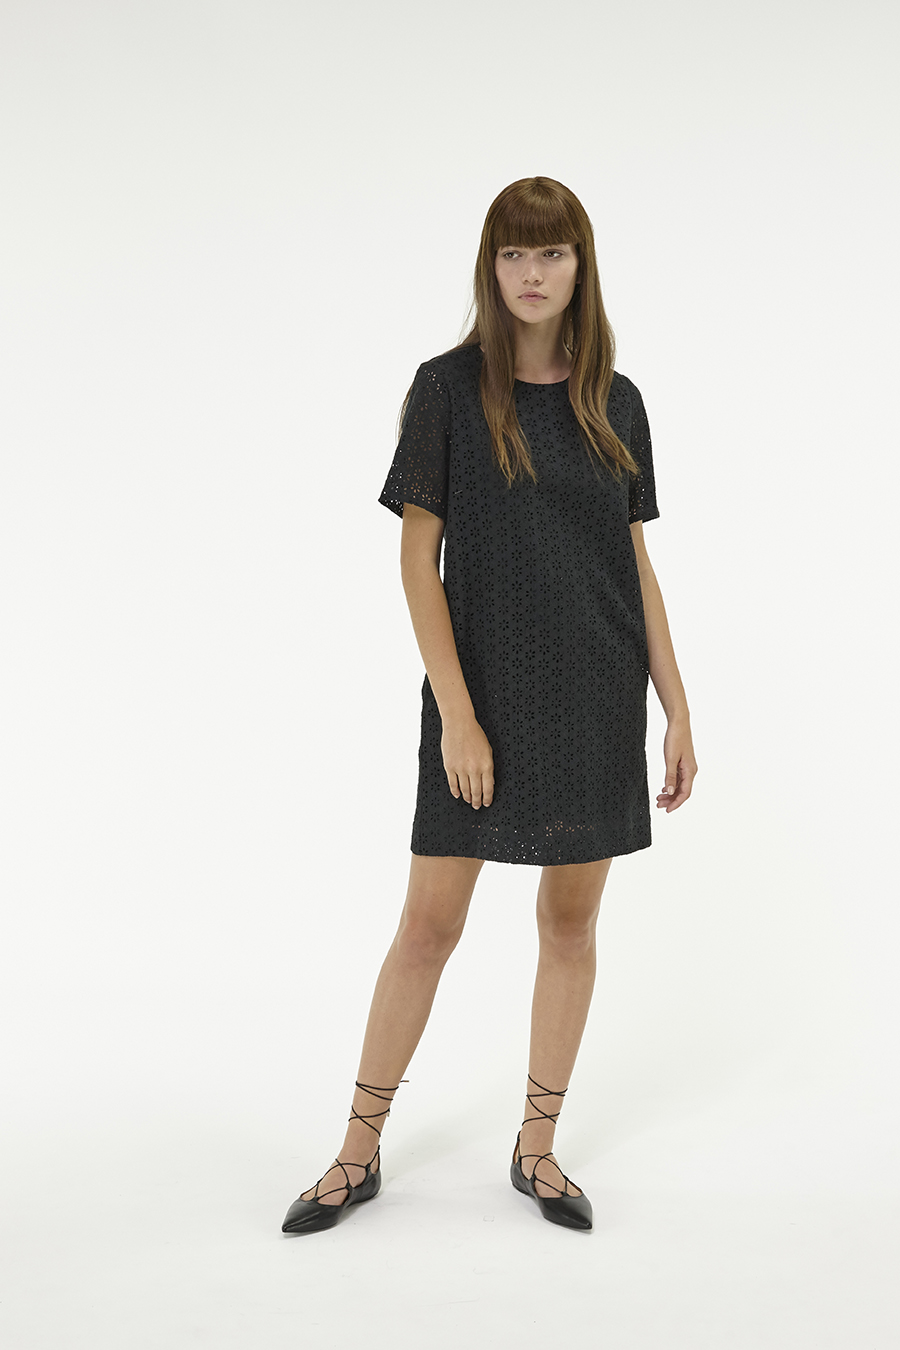 Huffer_Q3-16_W-Hope-Shell-Dress_Black-04